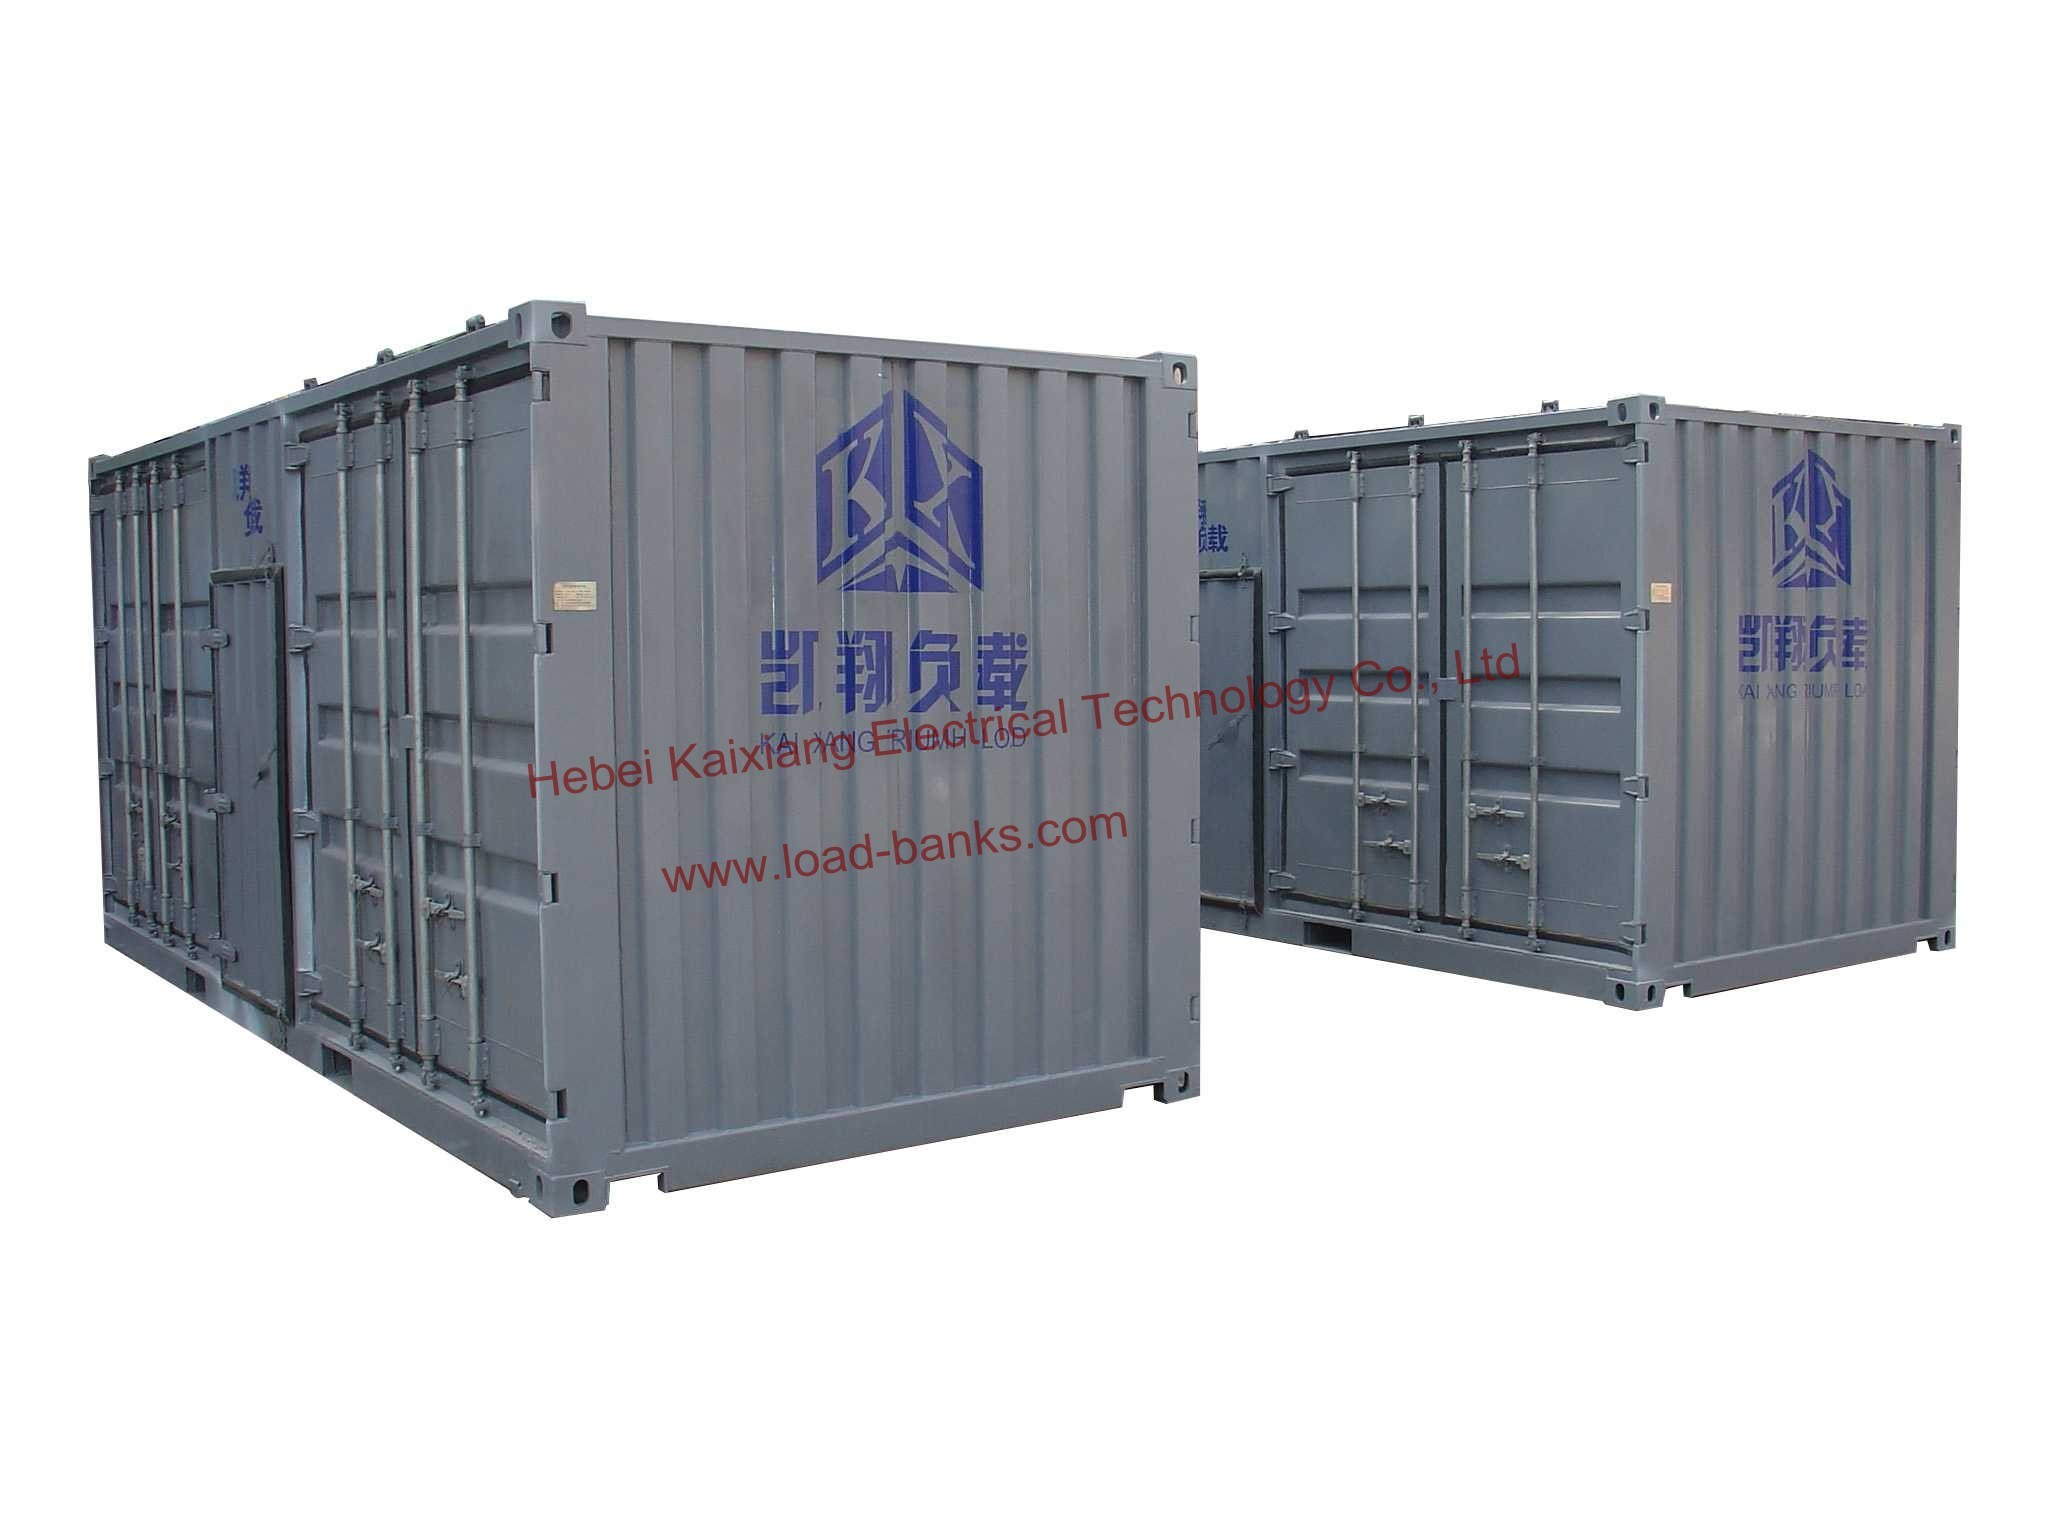 (container type) AC400-6000kw Load Bank